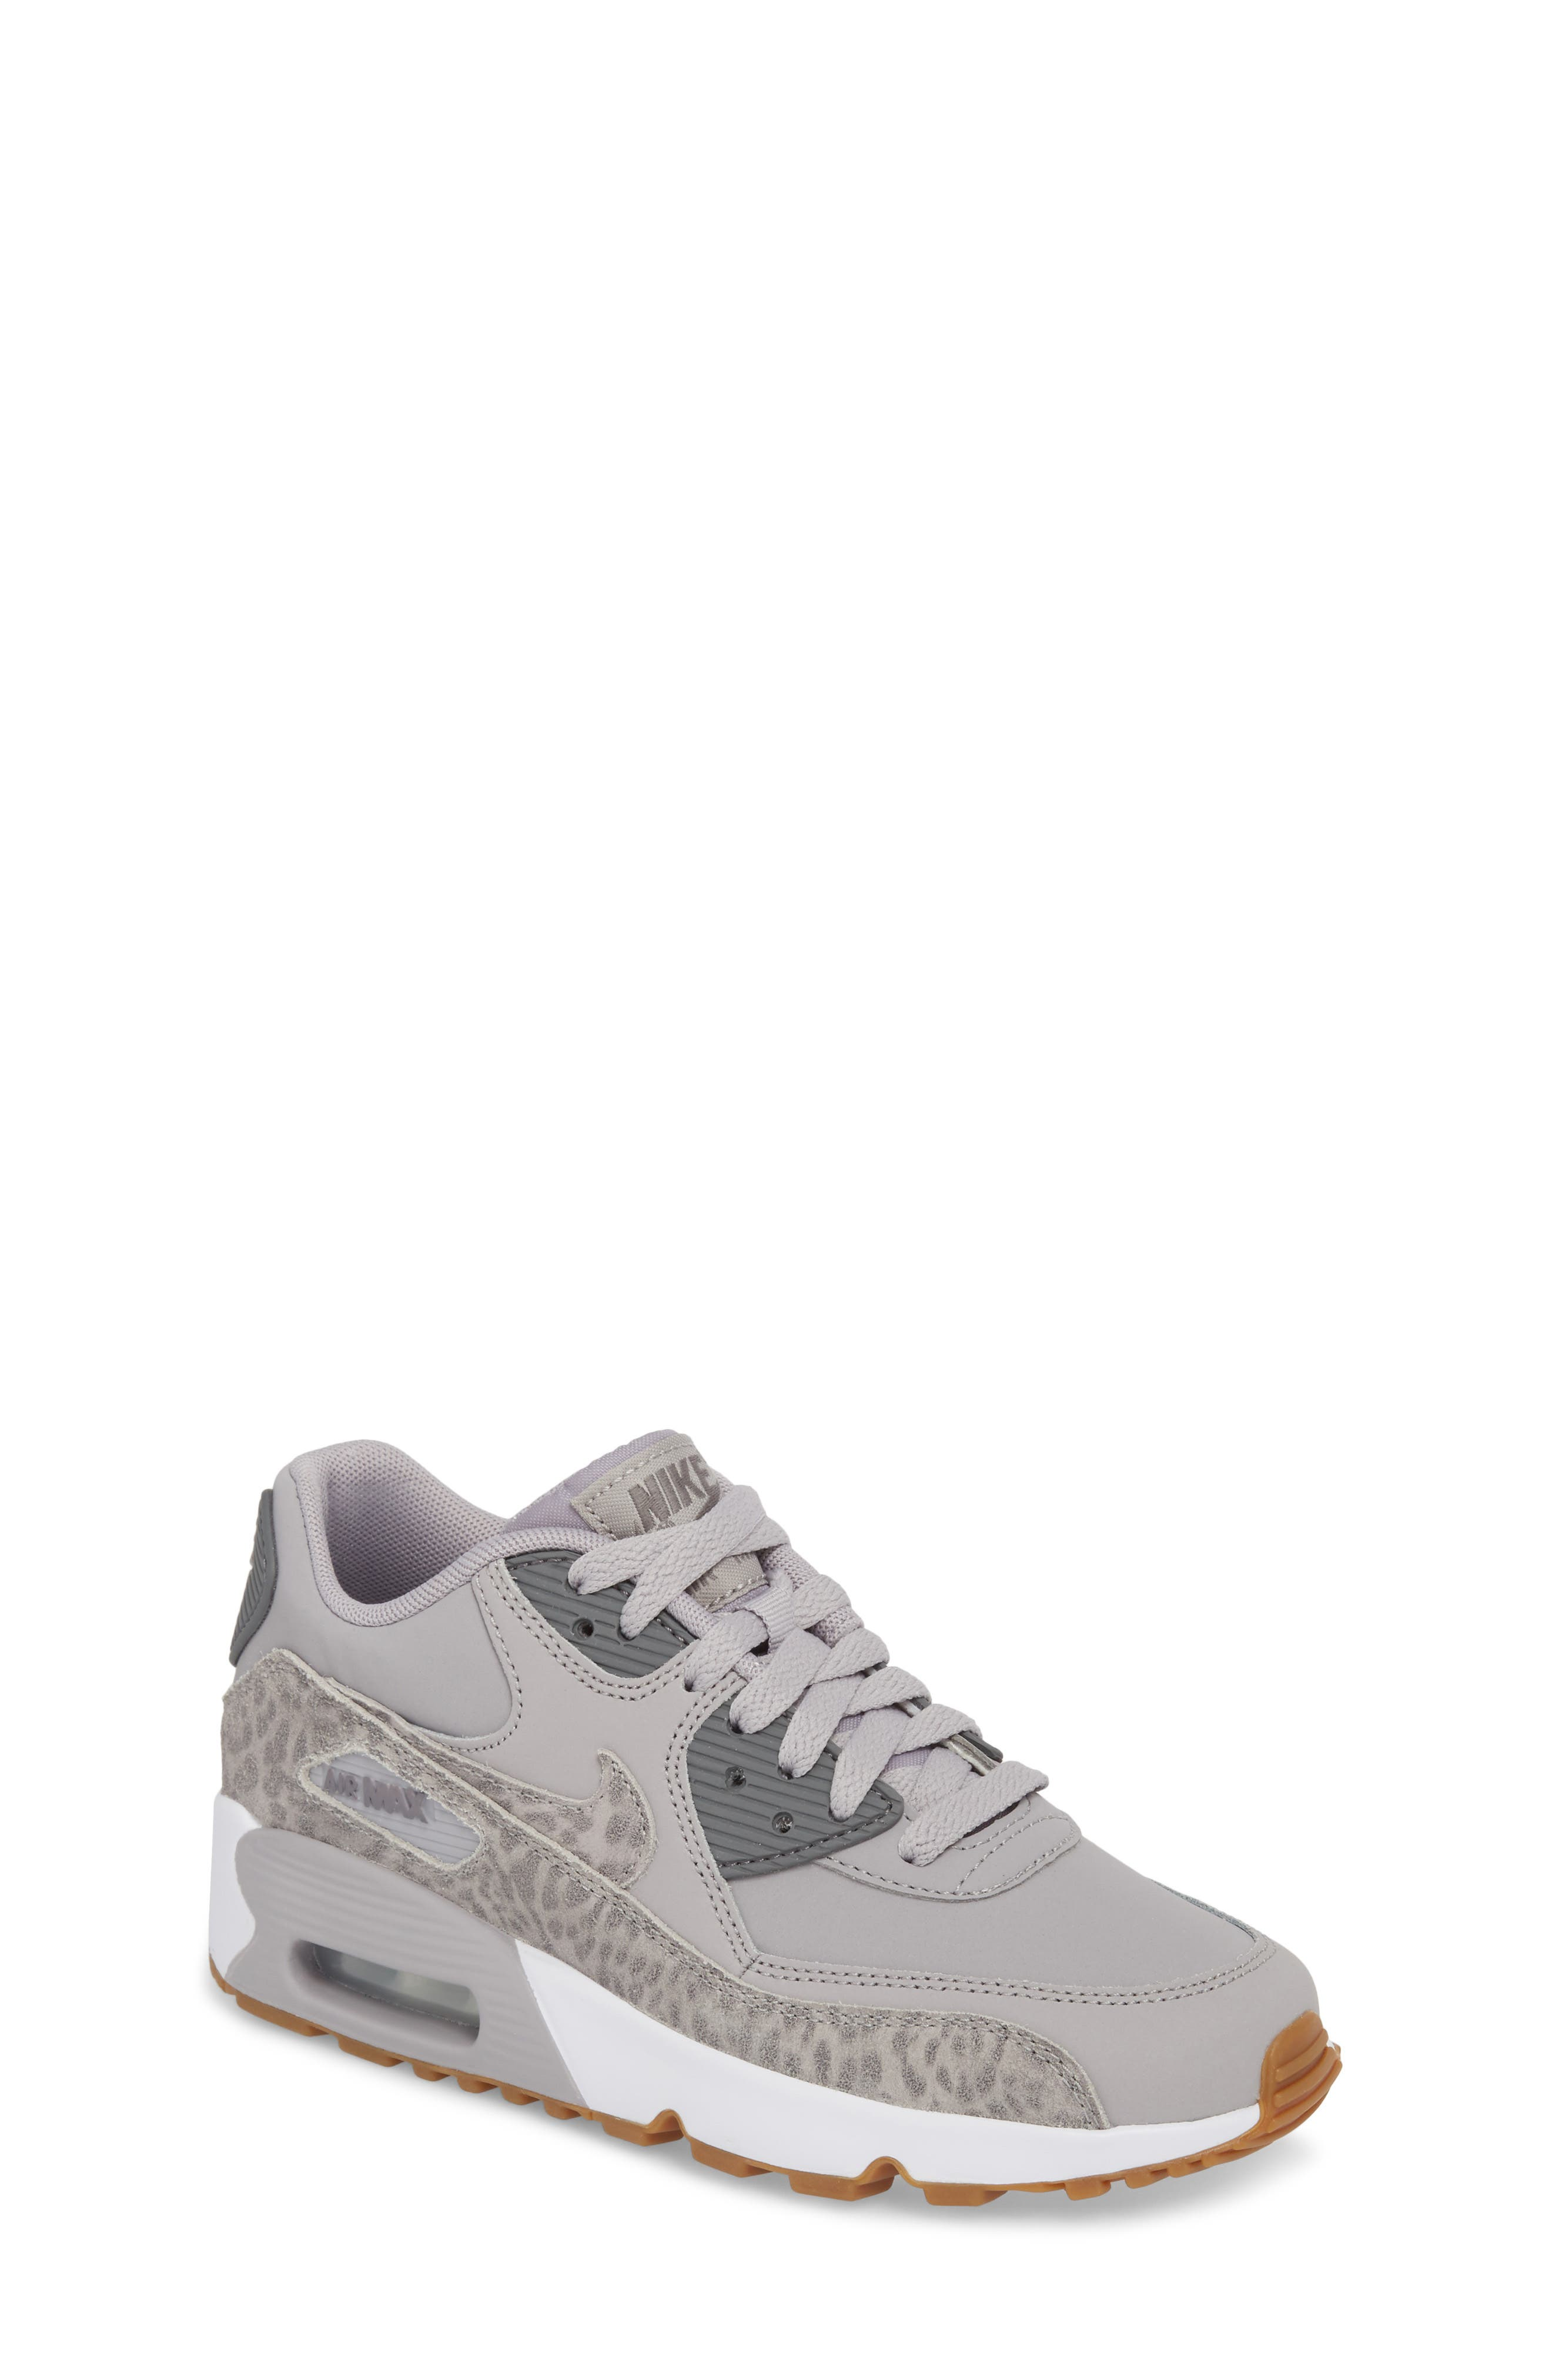 Air Max 90 Leather Sneaker,                             Main thumbnail 1, color,                             Atmosphere Grey/ Smoke/ White